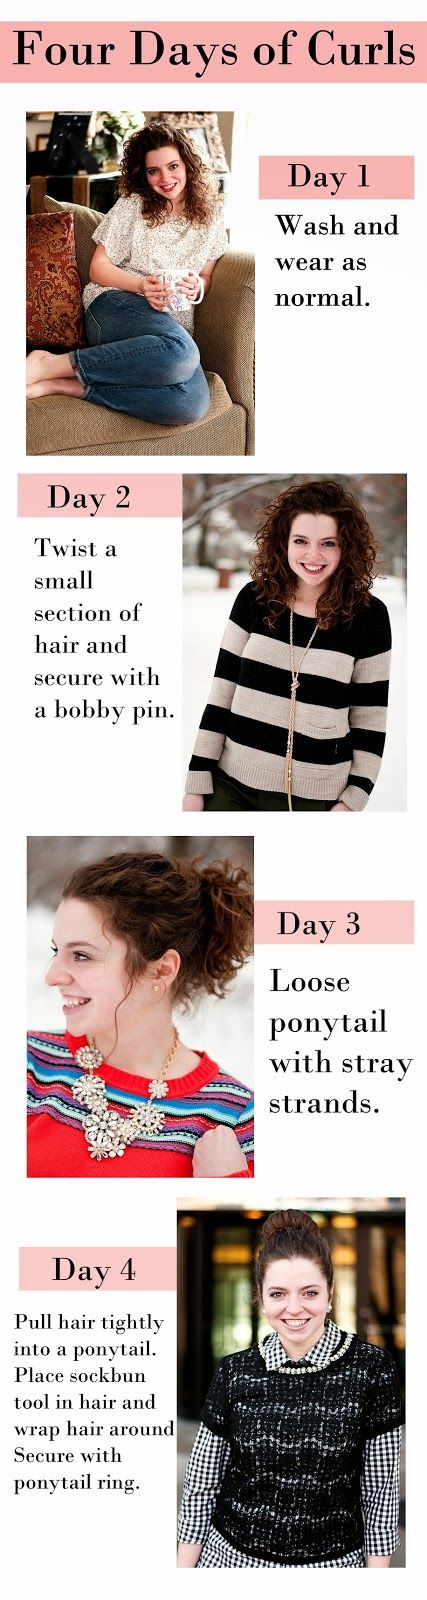 How I Mange My Curls// click for details-- would be great, except by day three I look like a ragged, matted mess.